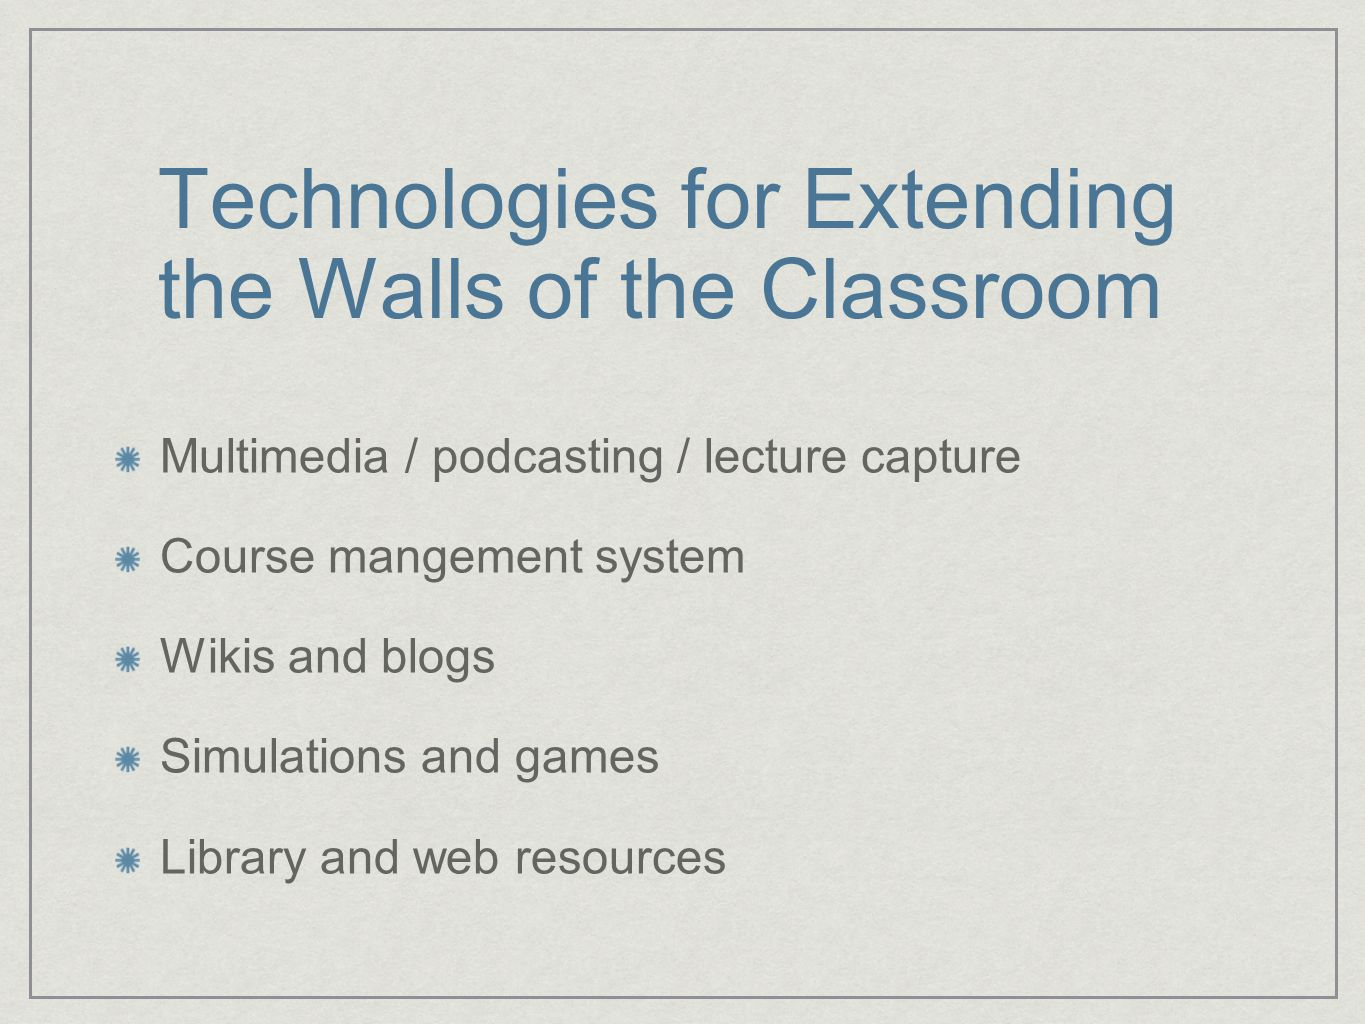 Technologies for Extending the Walls of the Classroom Multimedia / podcasting / lecture capture Course mangement system Wikis and blogs Simulations and games Library and web resources